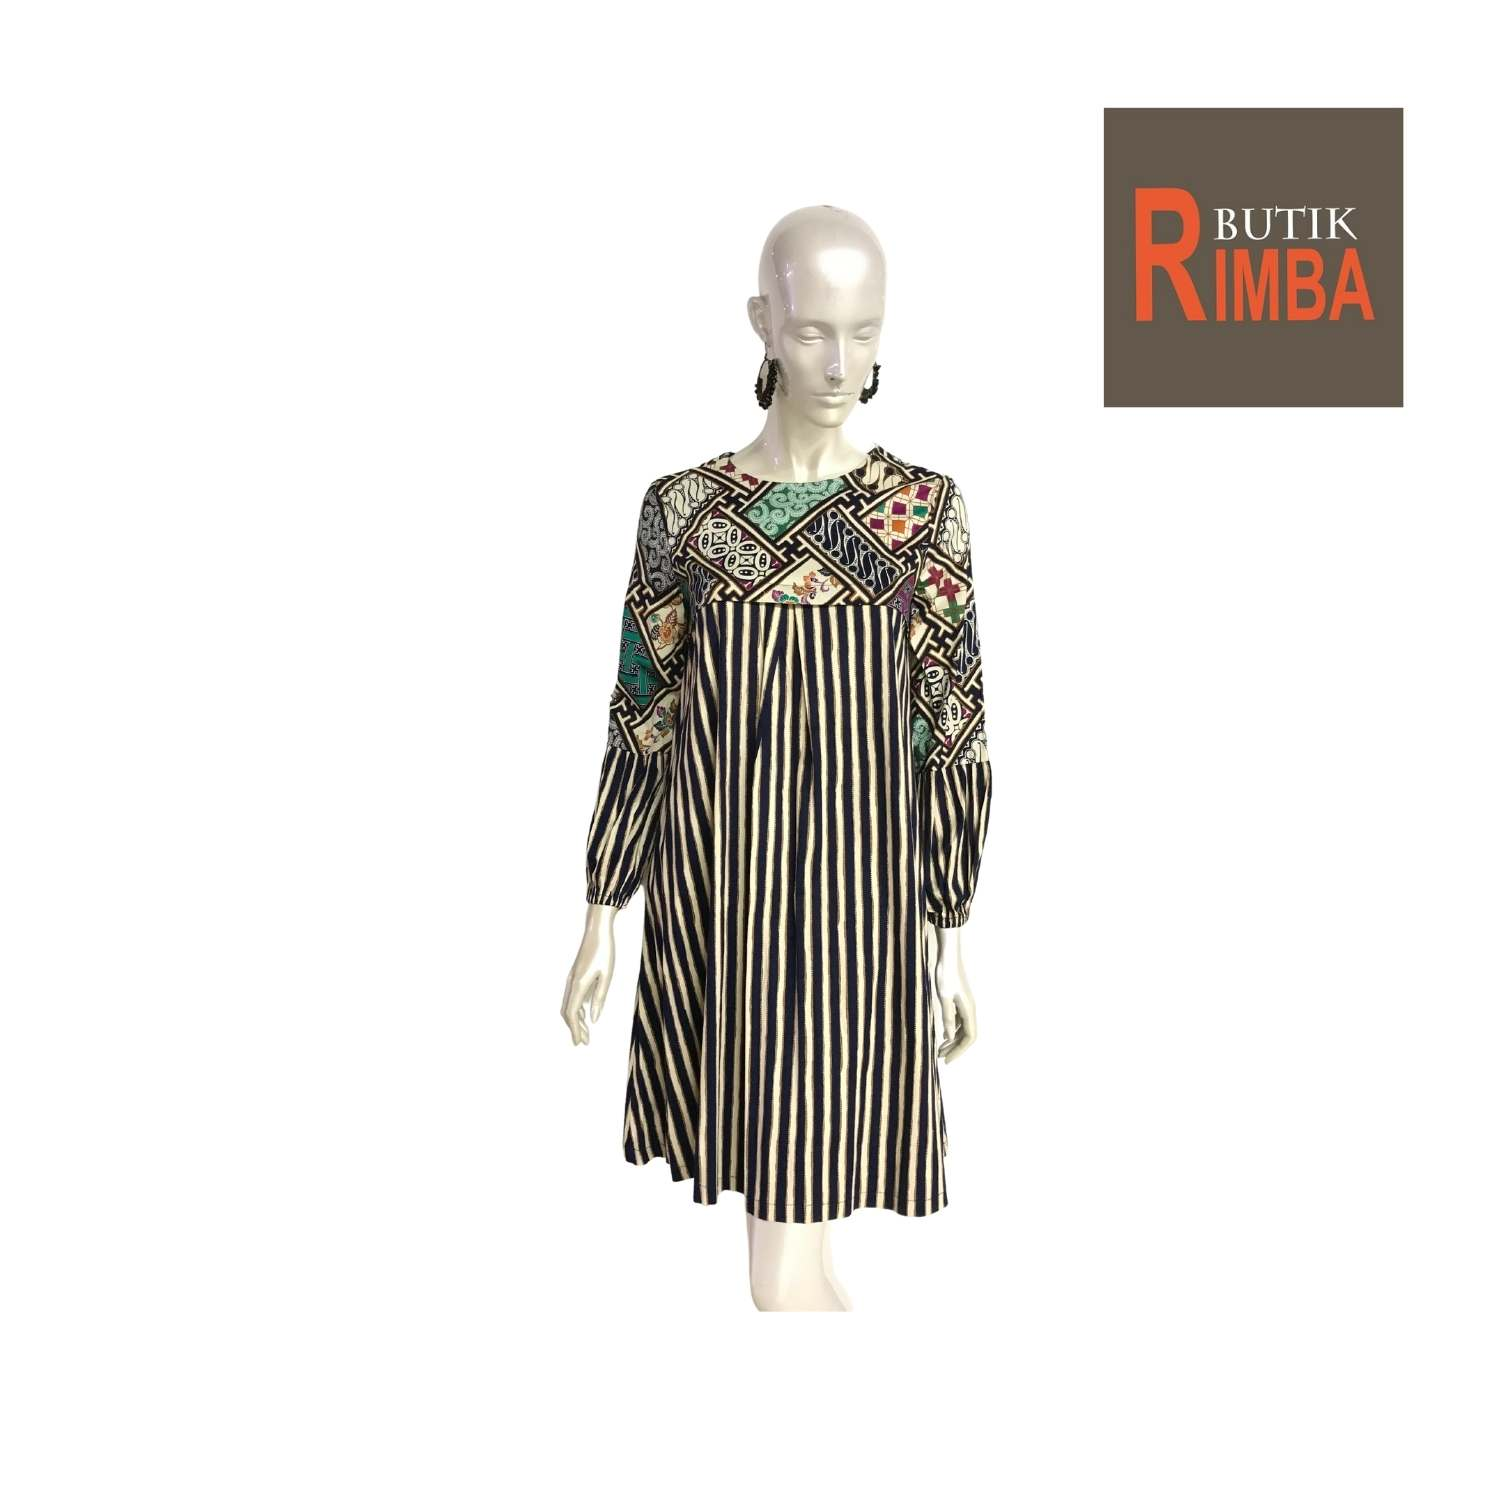 MODERN DRESS BATIK COTTON STRETCHABLE KNEE LENGTH FREE SIZE FOR FASHIONABLE WOMEN IN MIND 06